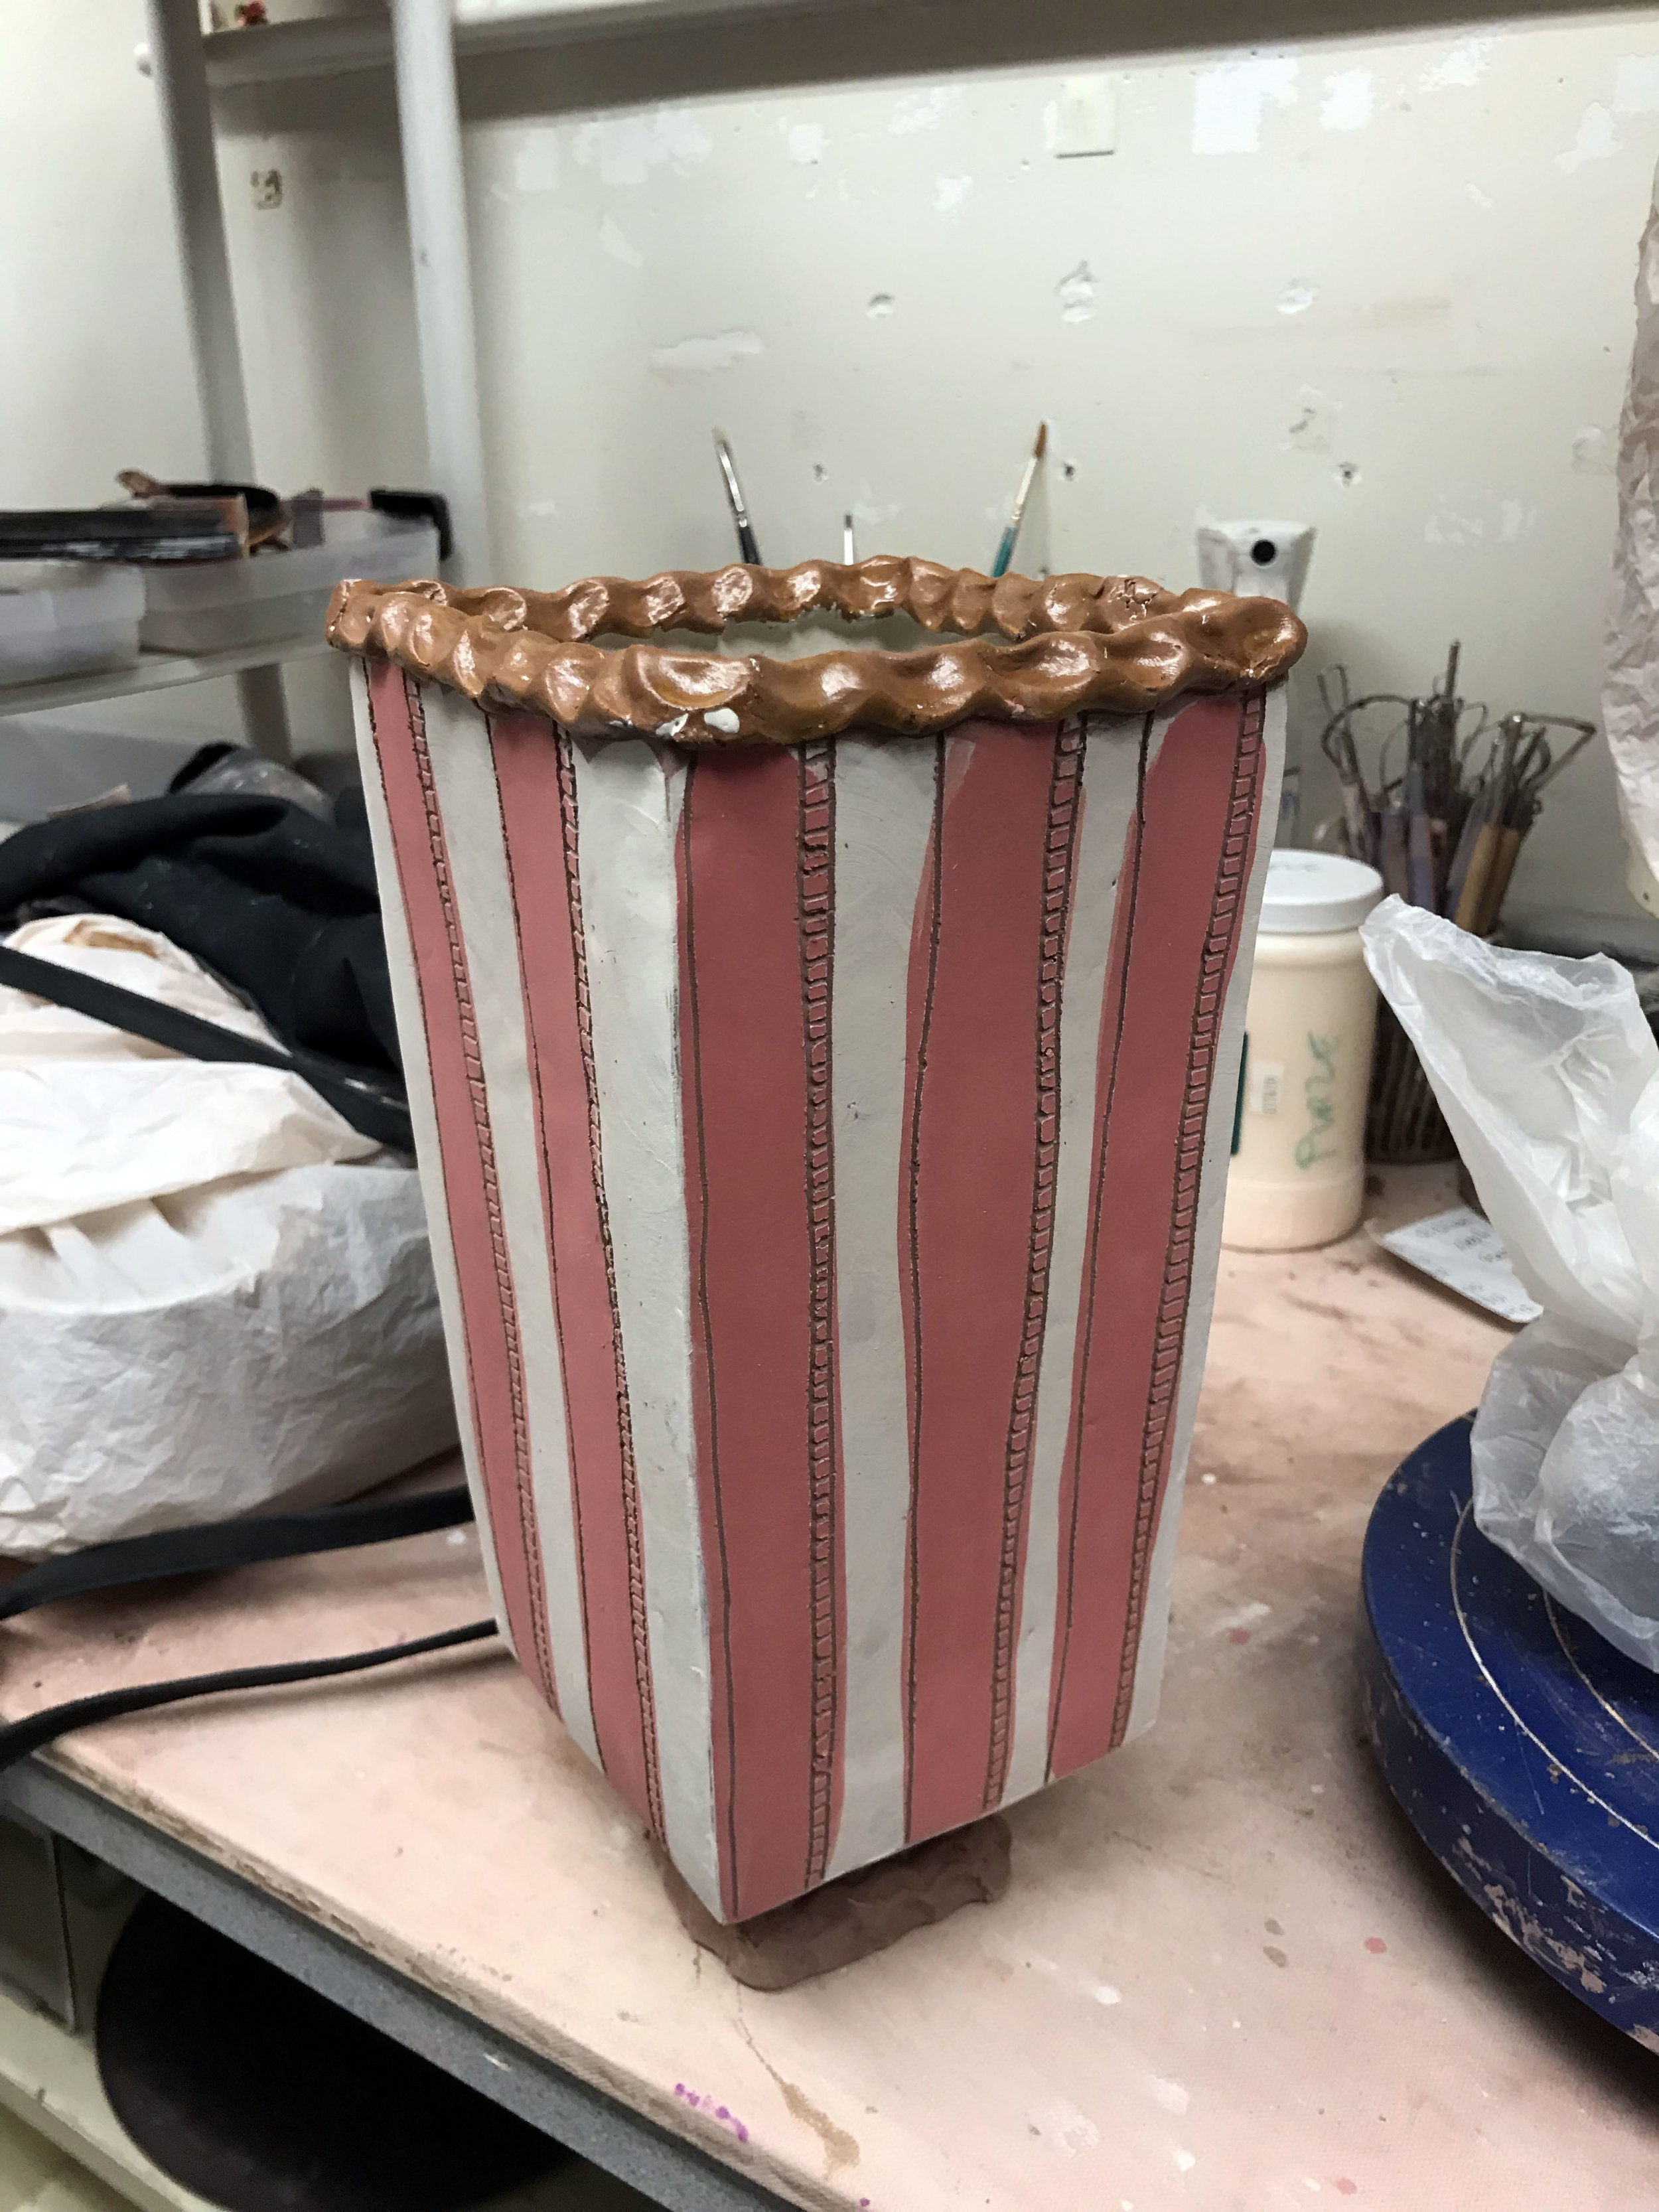 """Popcorn Anyone? - I have had this idea in my head for too long, and it has finally come to life. I wanted to make my own version of a """"free re-fill"""" popcorn bag. This vessel was slab constructed with pinched coils on the rim and built up on bottom to make an elevated foot. I am interested in how you can use something as simple as a LINE to guide a viewers eye in any direction you desire. In this case the viewers eye is drawn from top to bottom to rest on the texture of pinched coils, which actually resemble popcorn."""